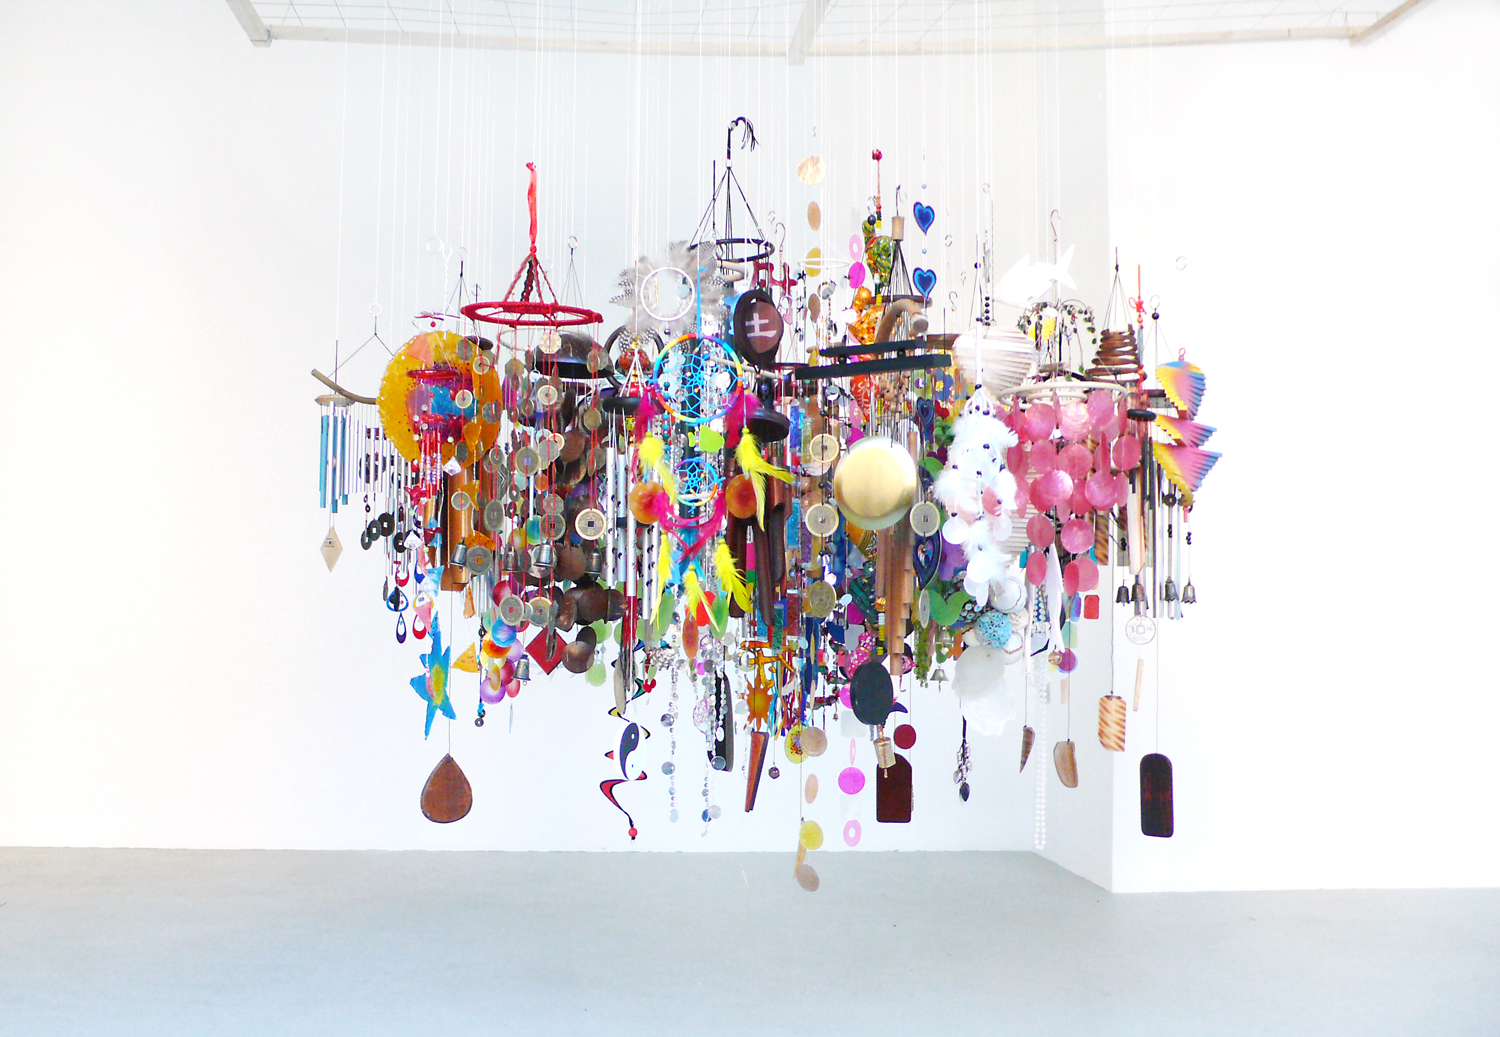 Mojo , 2012, metal, wood, bamboo, leather, glas, textiles, plastic, mussels, feathers, diameter ca 150cm Installation at the studio, Berlin